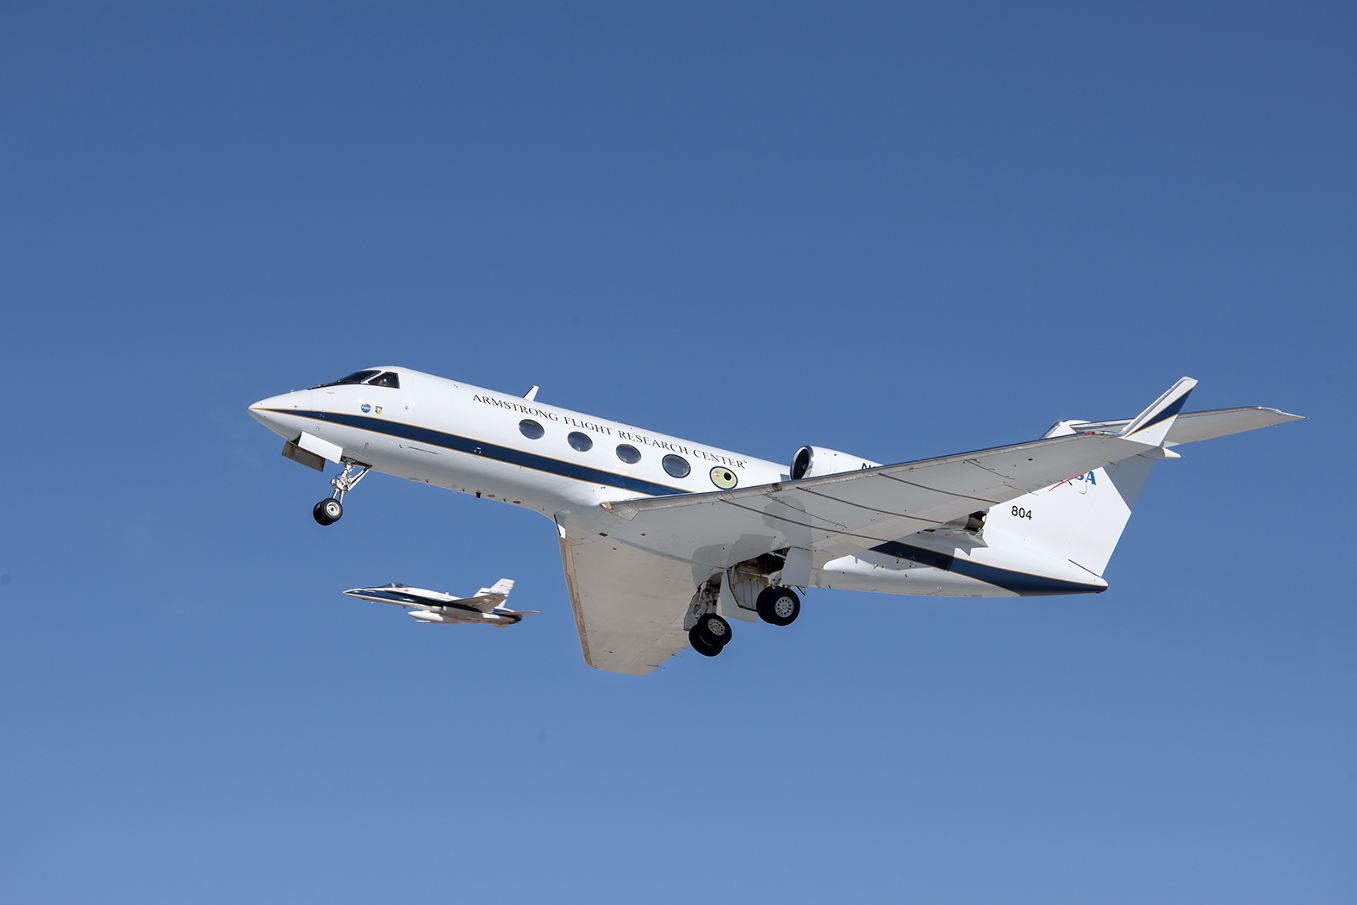 NASA tests noise reduction technologies